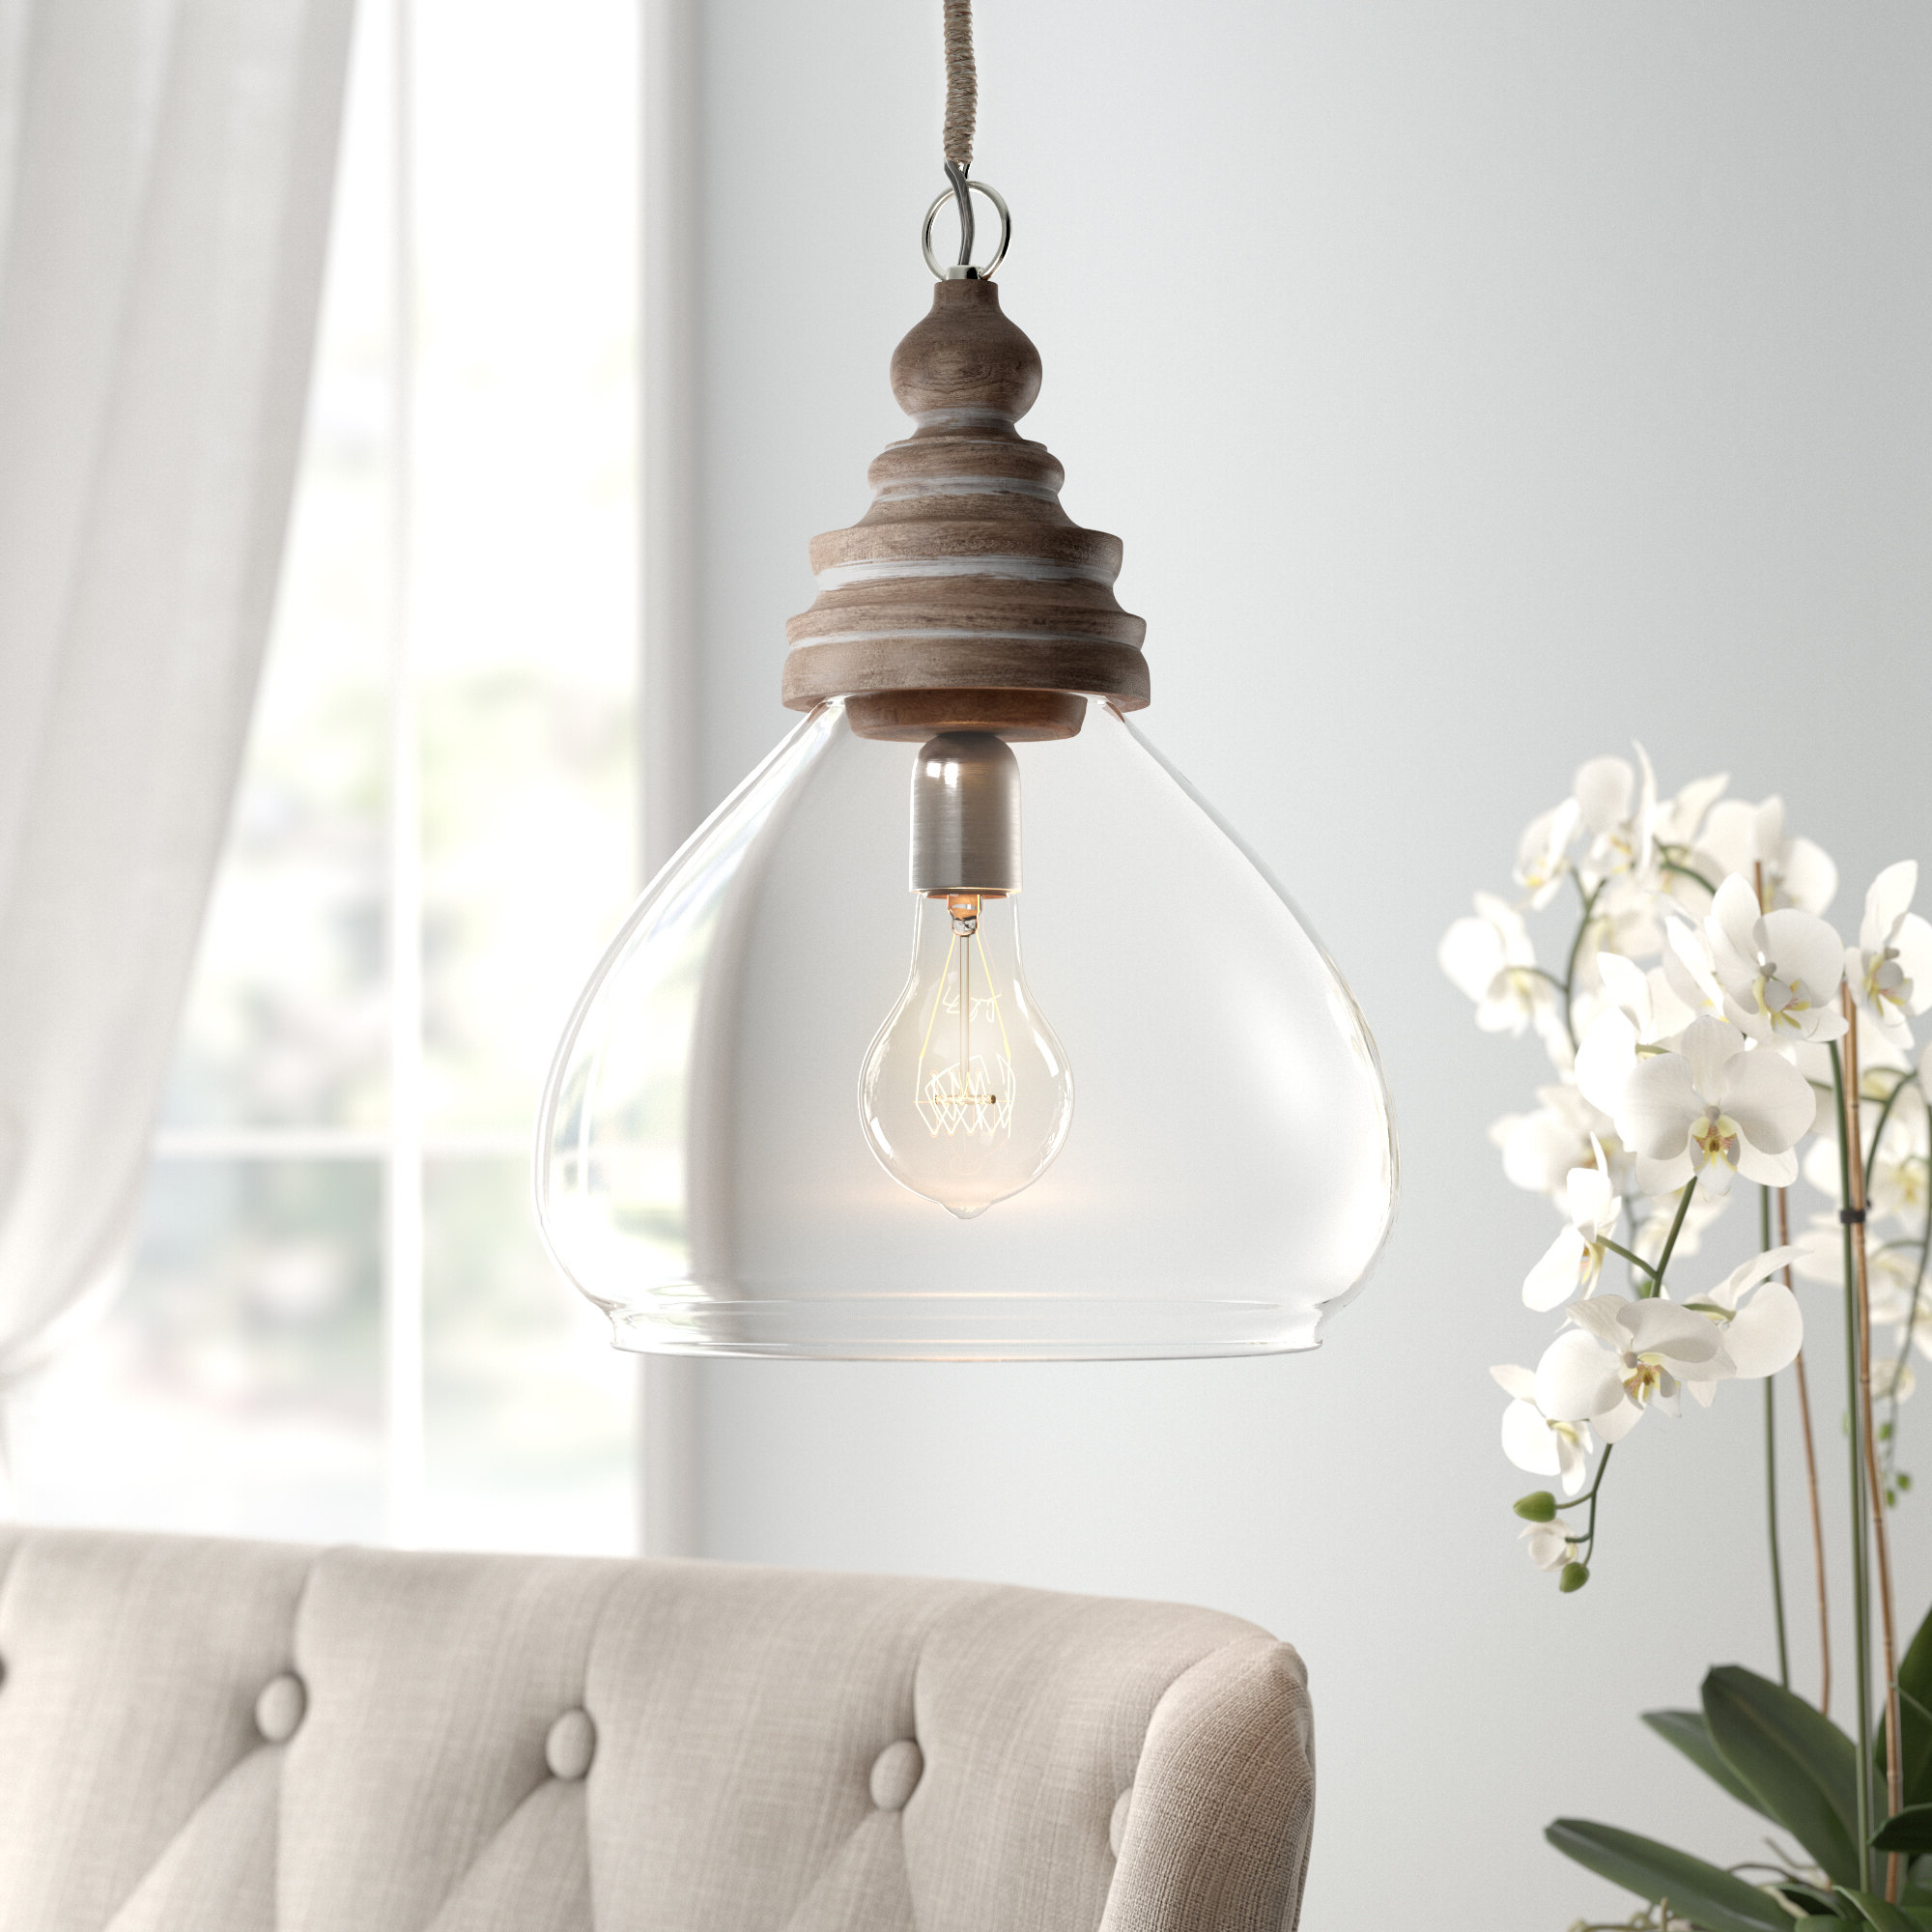 Brisa 1 Light Single Dome Pendant With Regard To Best And Newest Wentzville 1 Light Single Bell Pendants (Gallery 8 of 20)